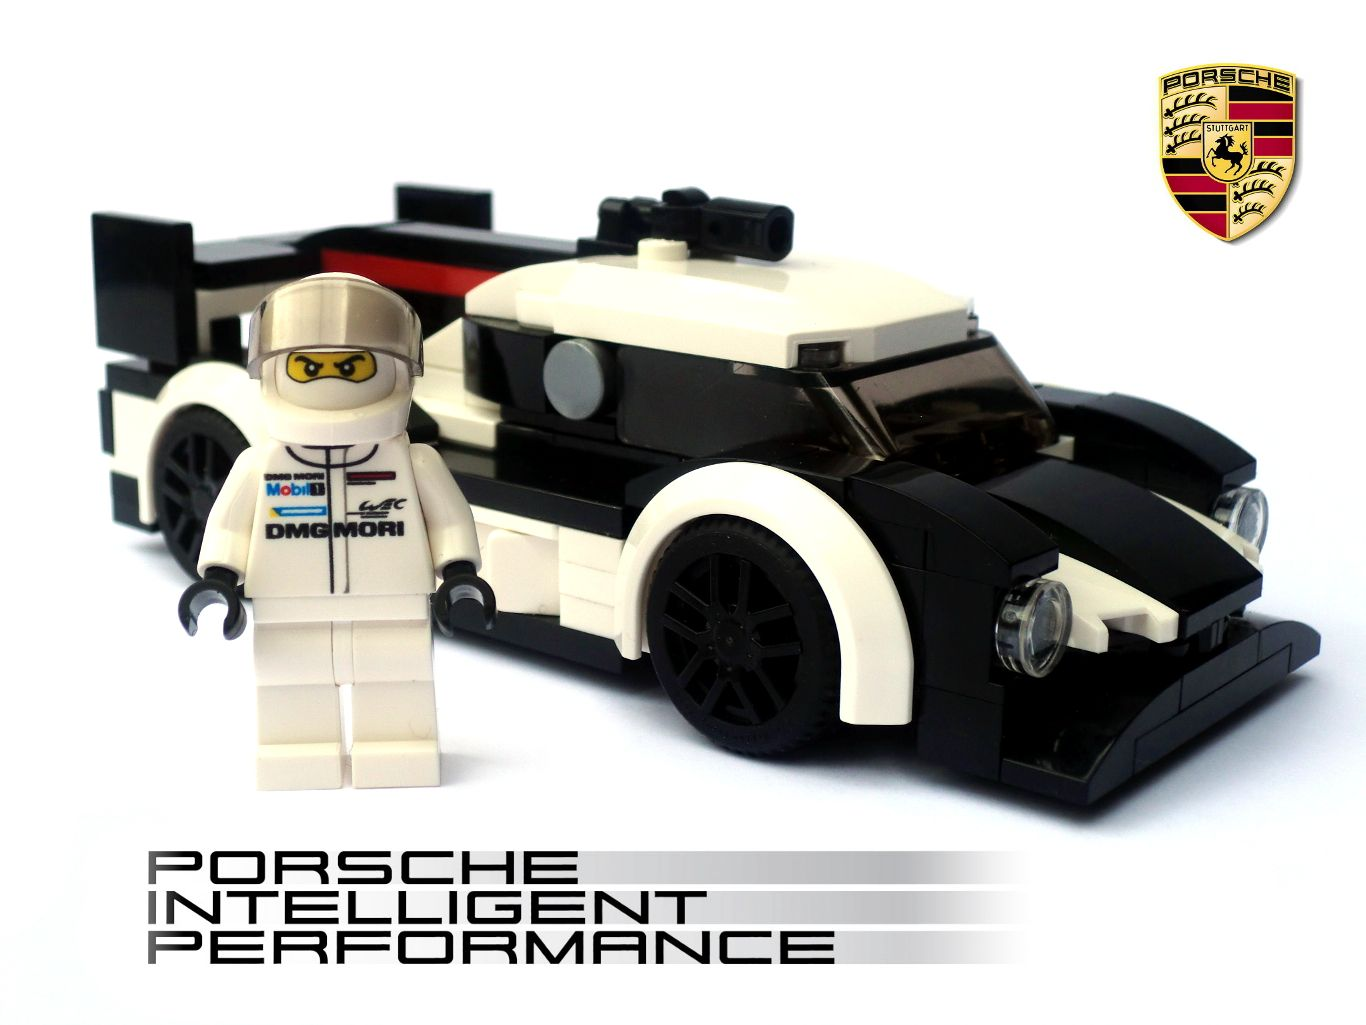 Lego City Porsche 919 Lmp1 Lego Cars Pinterest Lego City